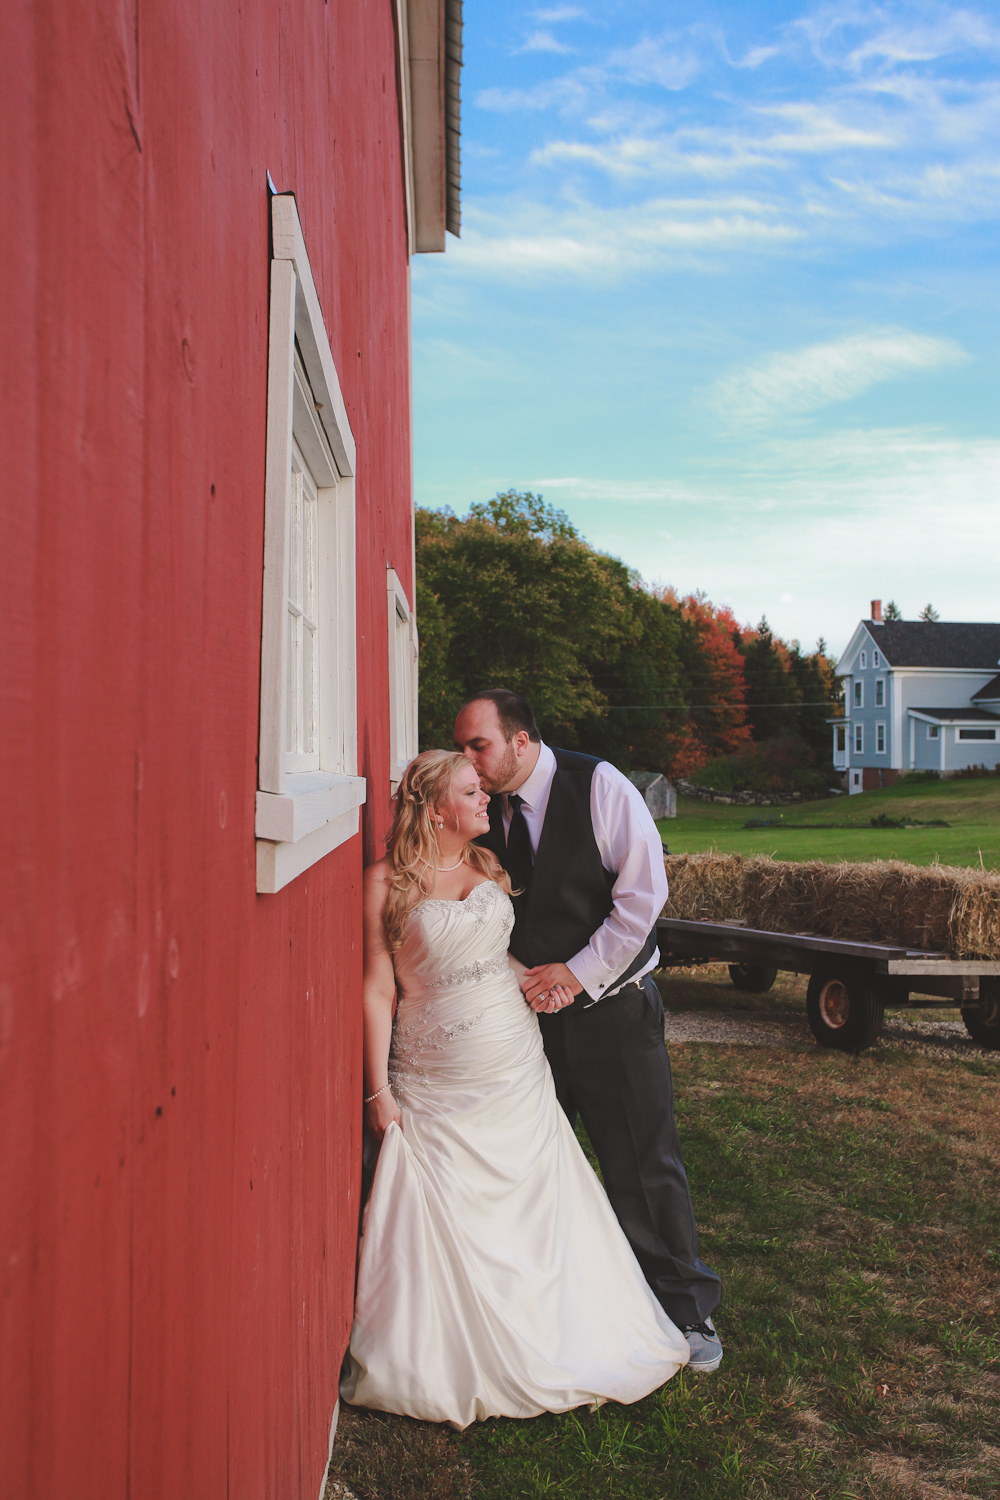 nh-wedding-photographer-96.jpg